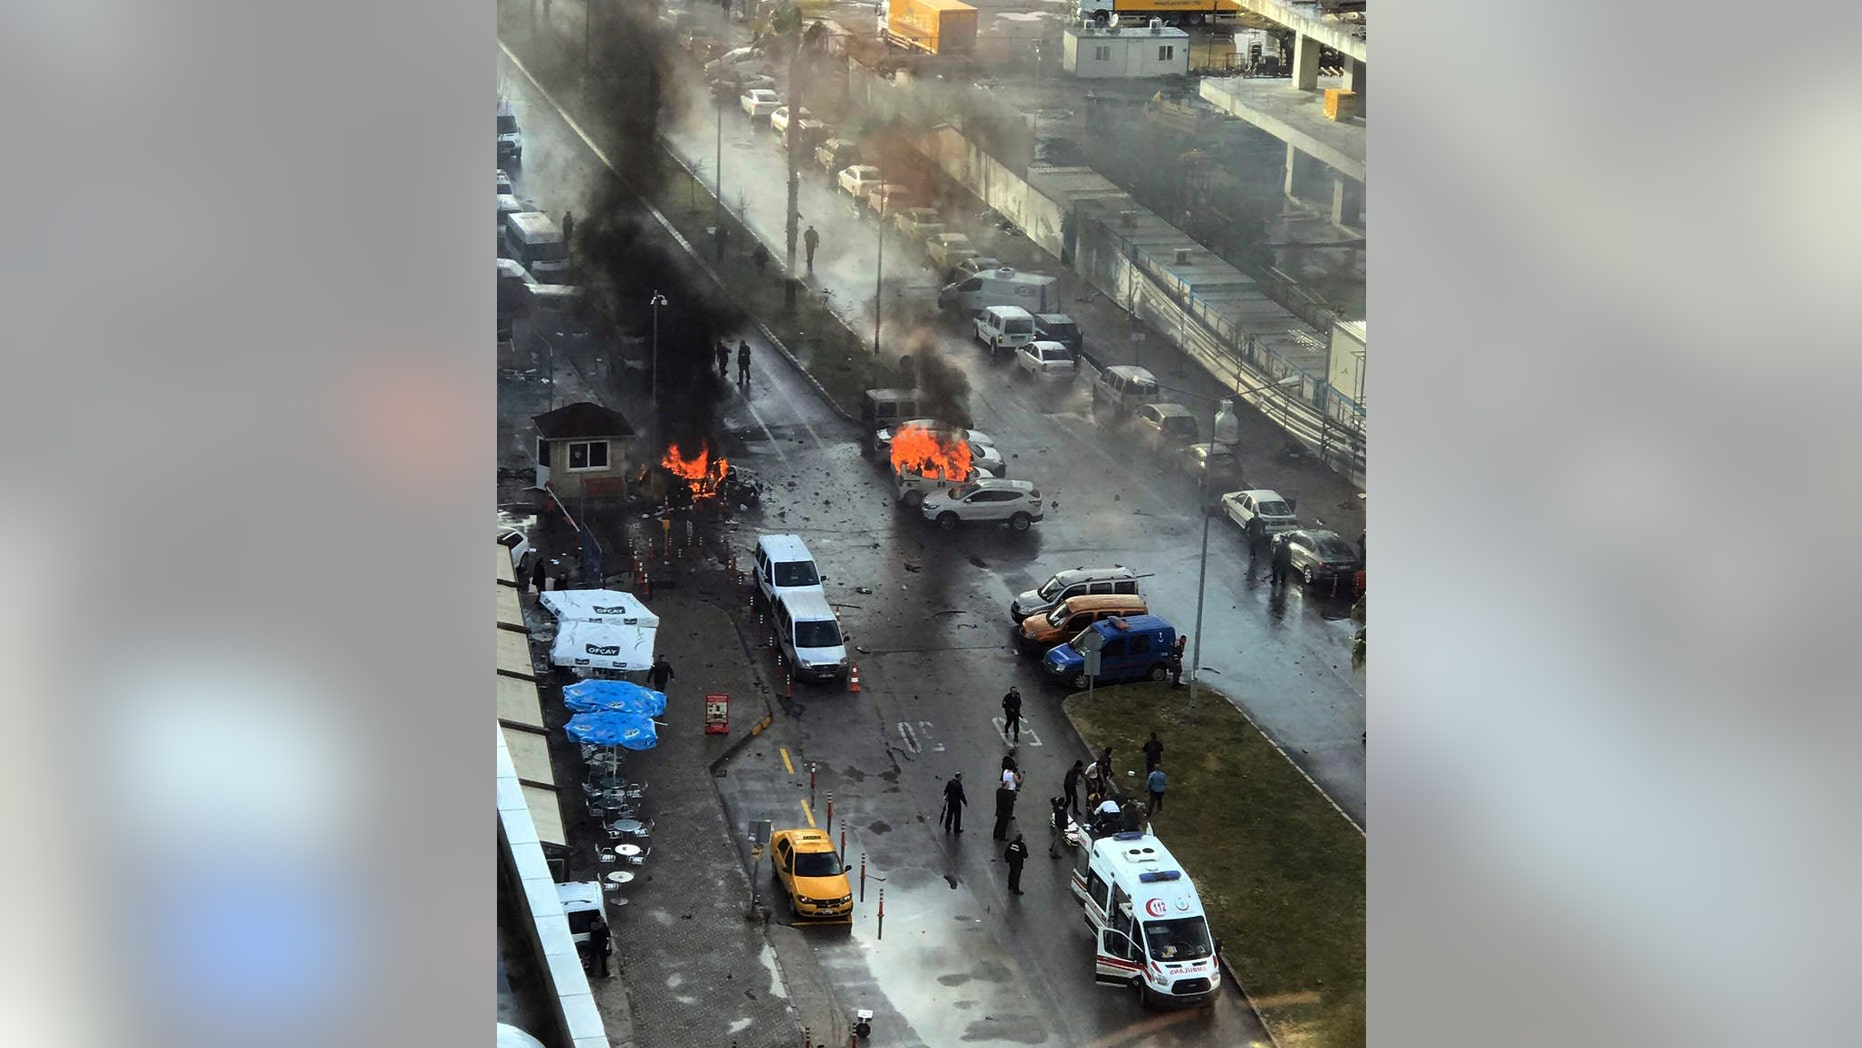 Cars burning after the explosion in Izmir.